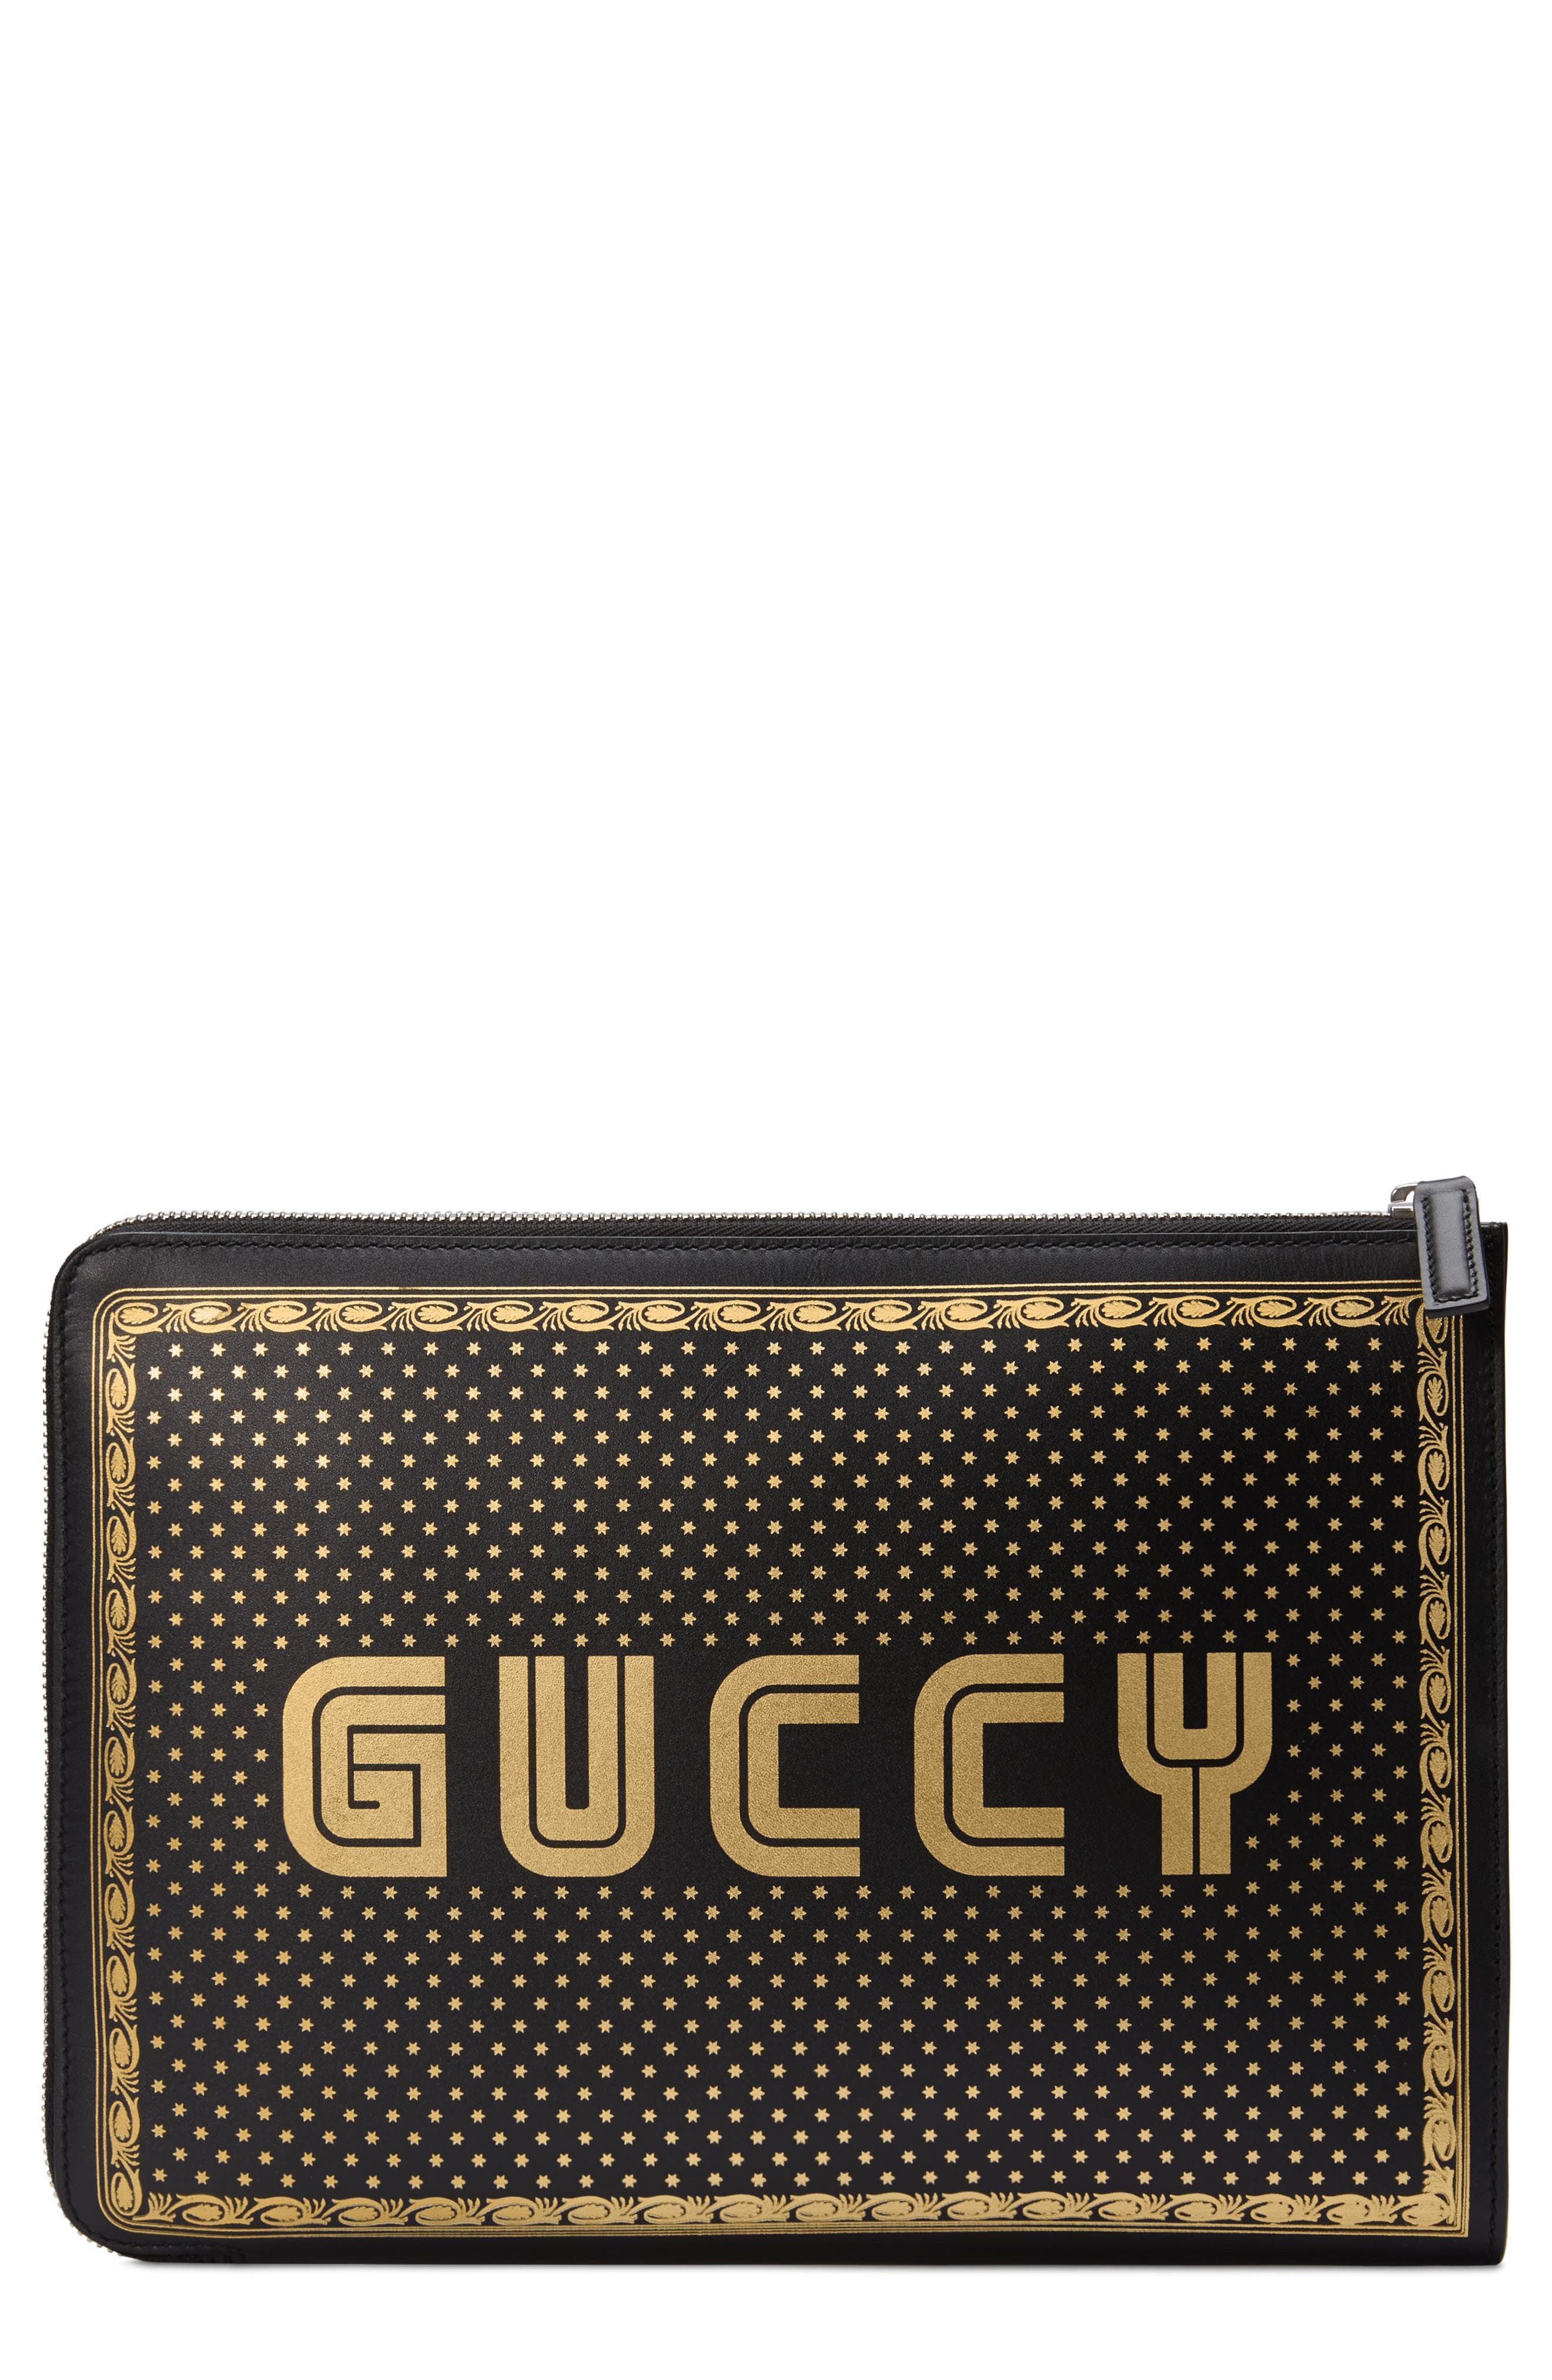 Alternate Image 1 Selected - Gucci Guccy Logo Moon & Stars Leather Clutch